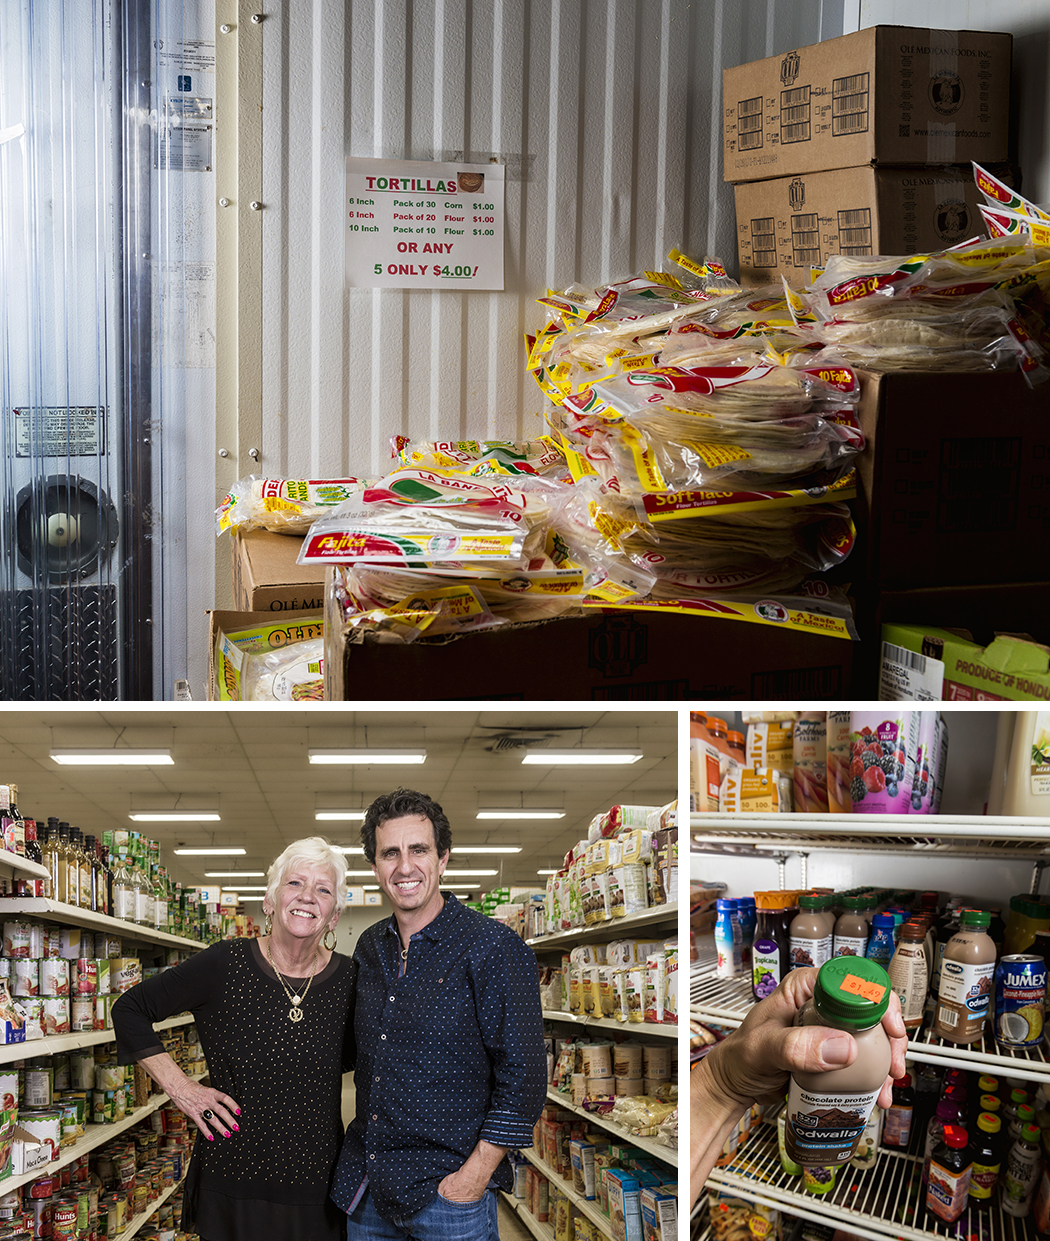 Clockwise from top: Tortillas for sale inside the walk-in cooler. Expensive juices sell for a fraction of the retail price. Gluckman with his right-hand woman, Sharon Gilbert. (Photo by Danny Fulgencio)